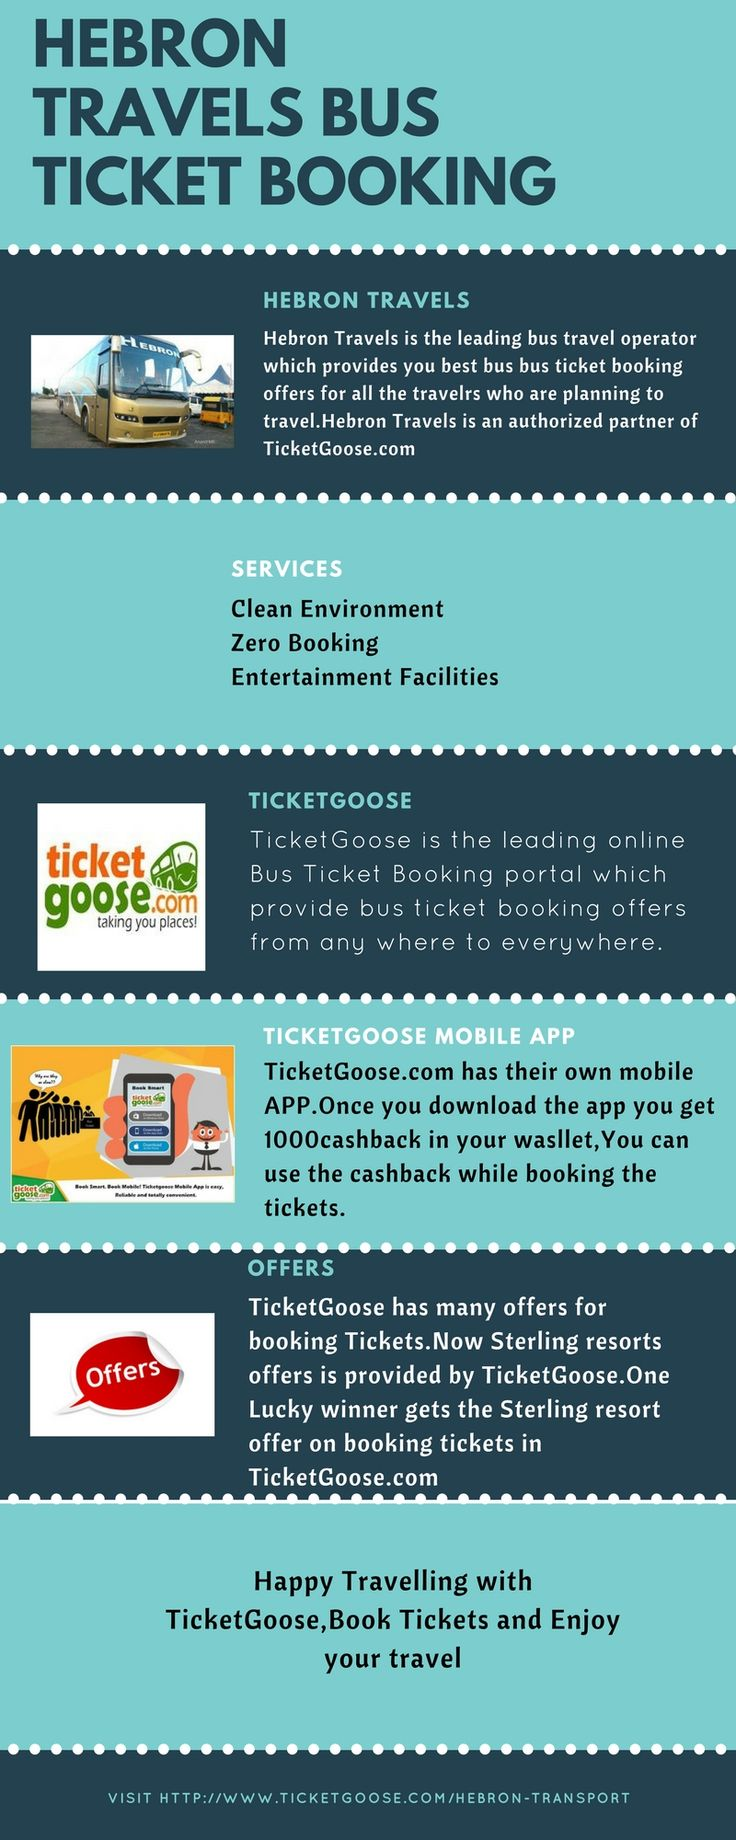 Herbon Travels provides the bus ticket booking to the major cities, Book the tickets for Hebon Travels at ticket goose at the best fare with best service  http://www.ticketgoose.com/hebron-transport